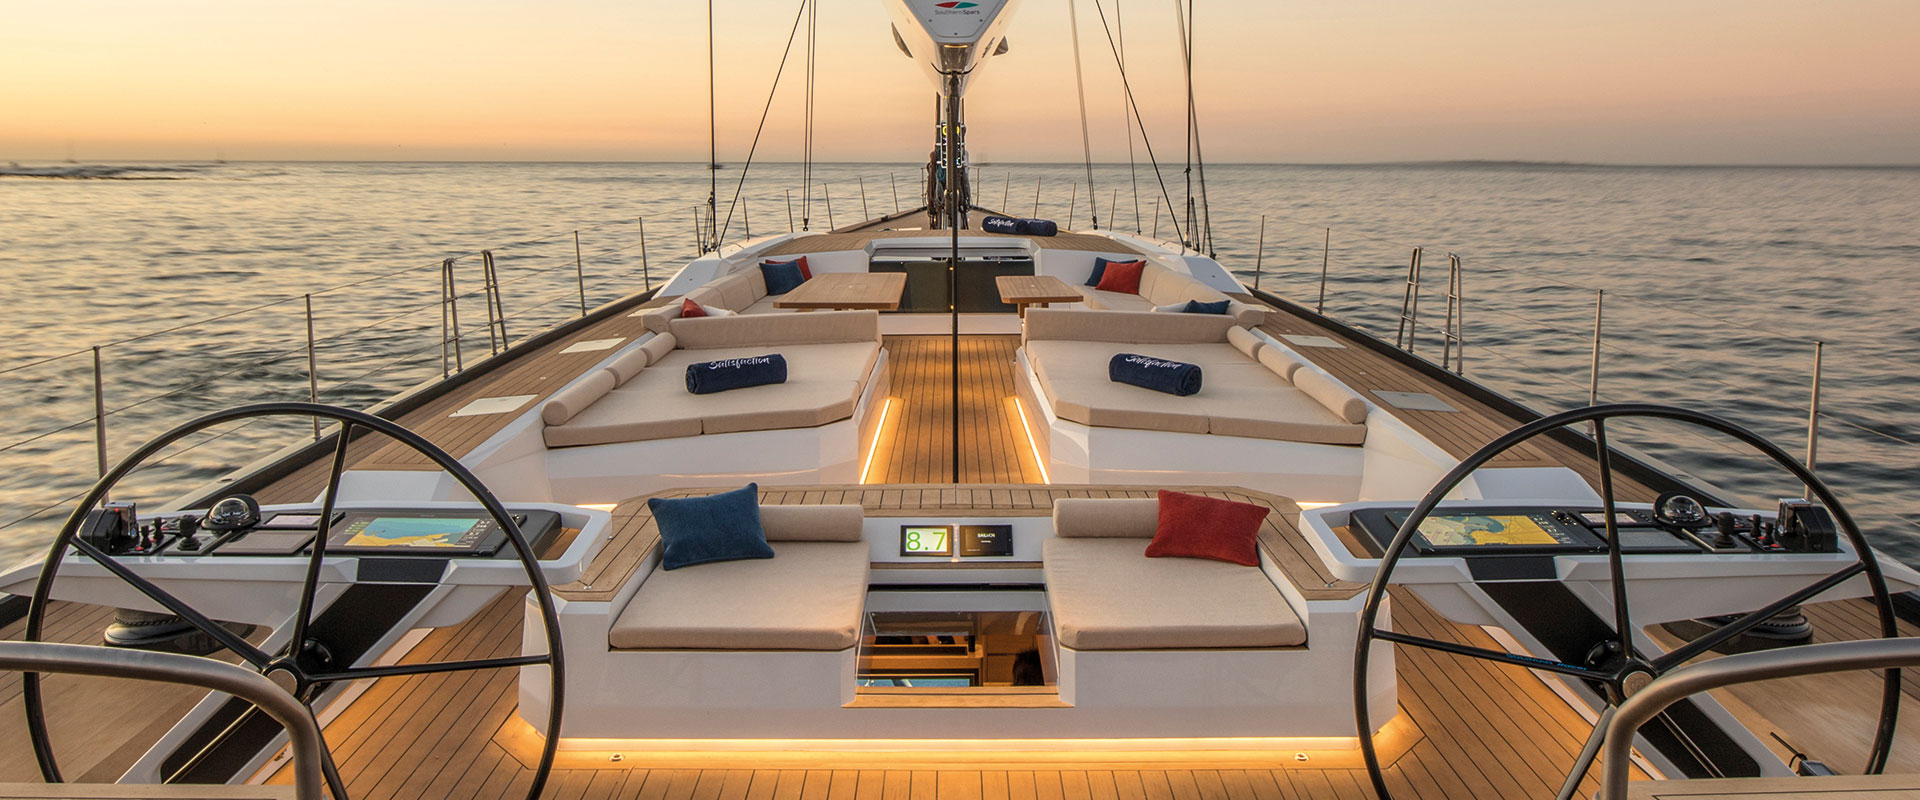 DISCOVER OUR CHARTER FLEET